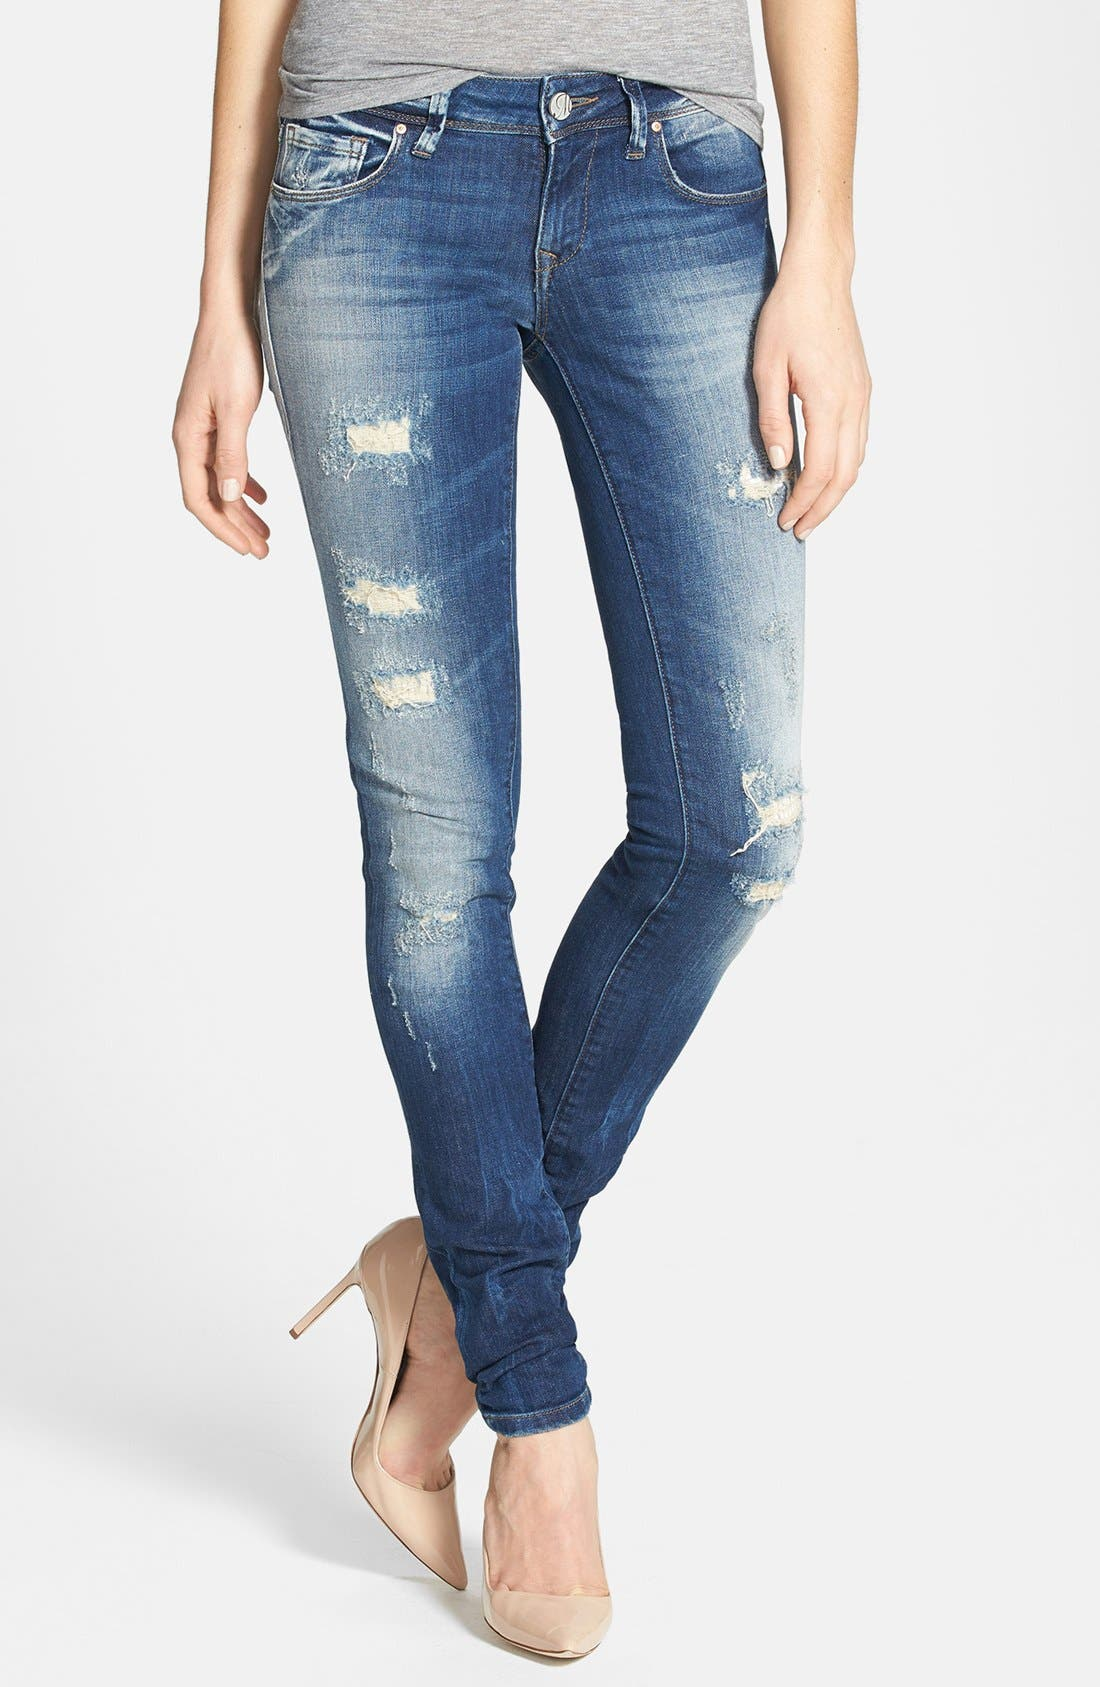 Alternate Image 1 Selected - Mavi Jeans 'Alexa Partly Cloudy' Distressed Stretch Skinny Jeans (Artist Vintage)